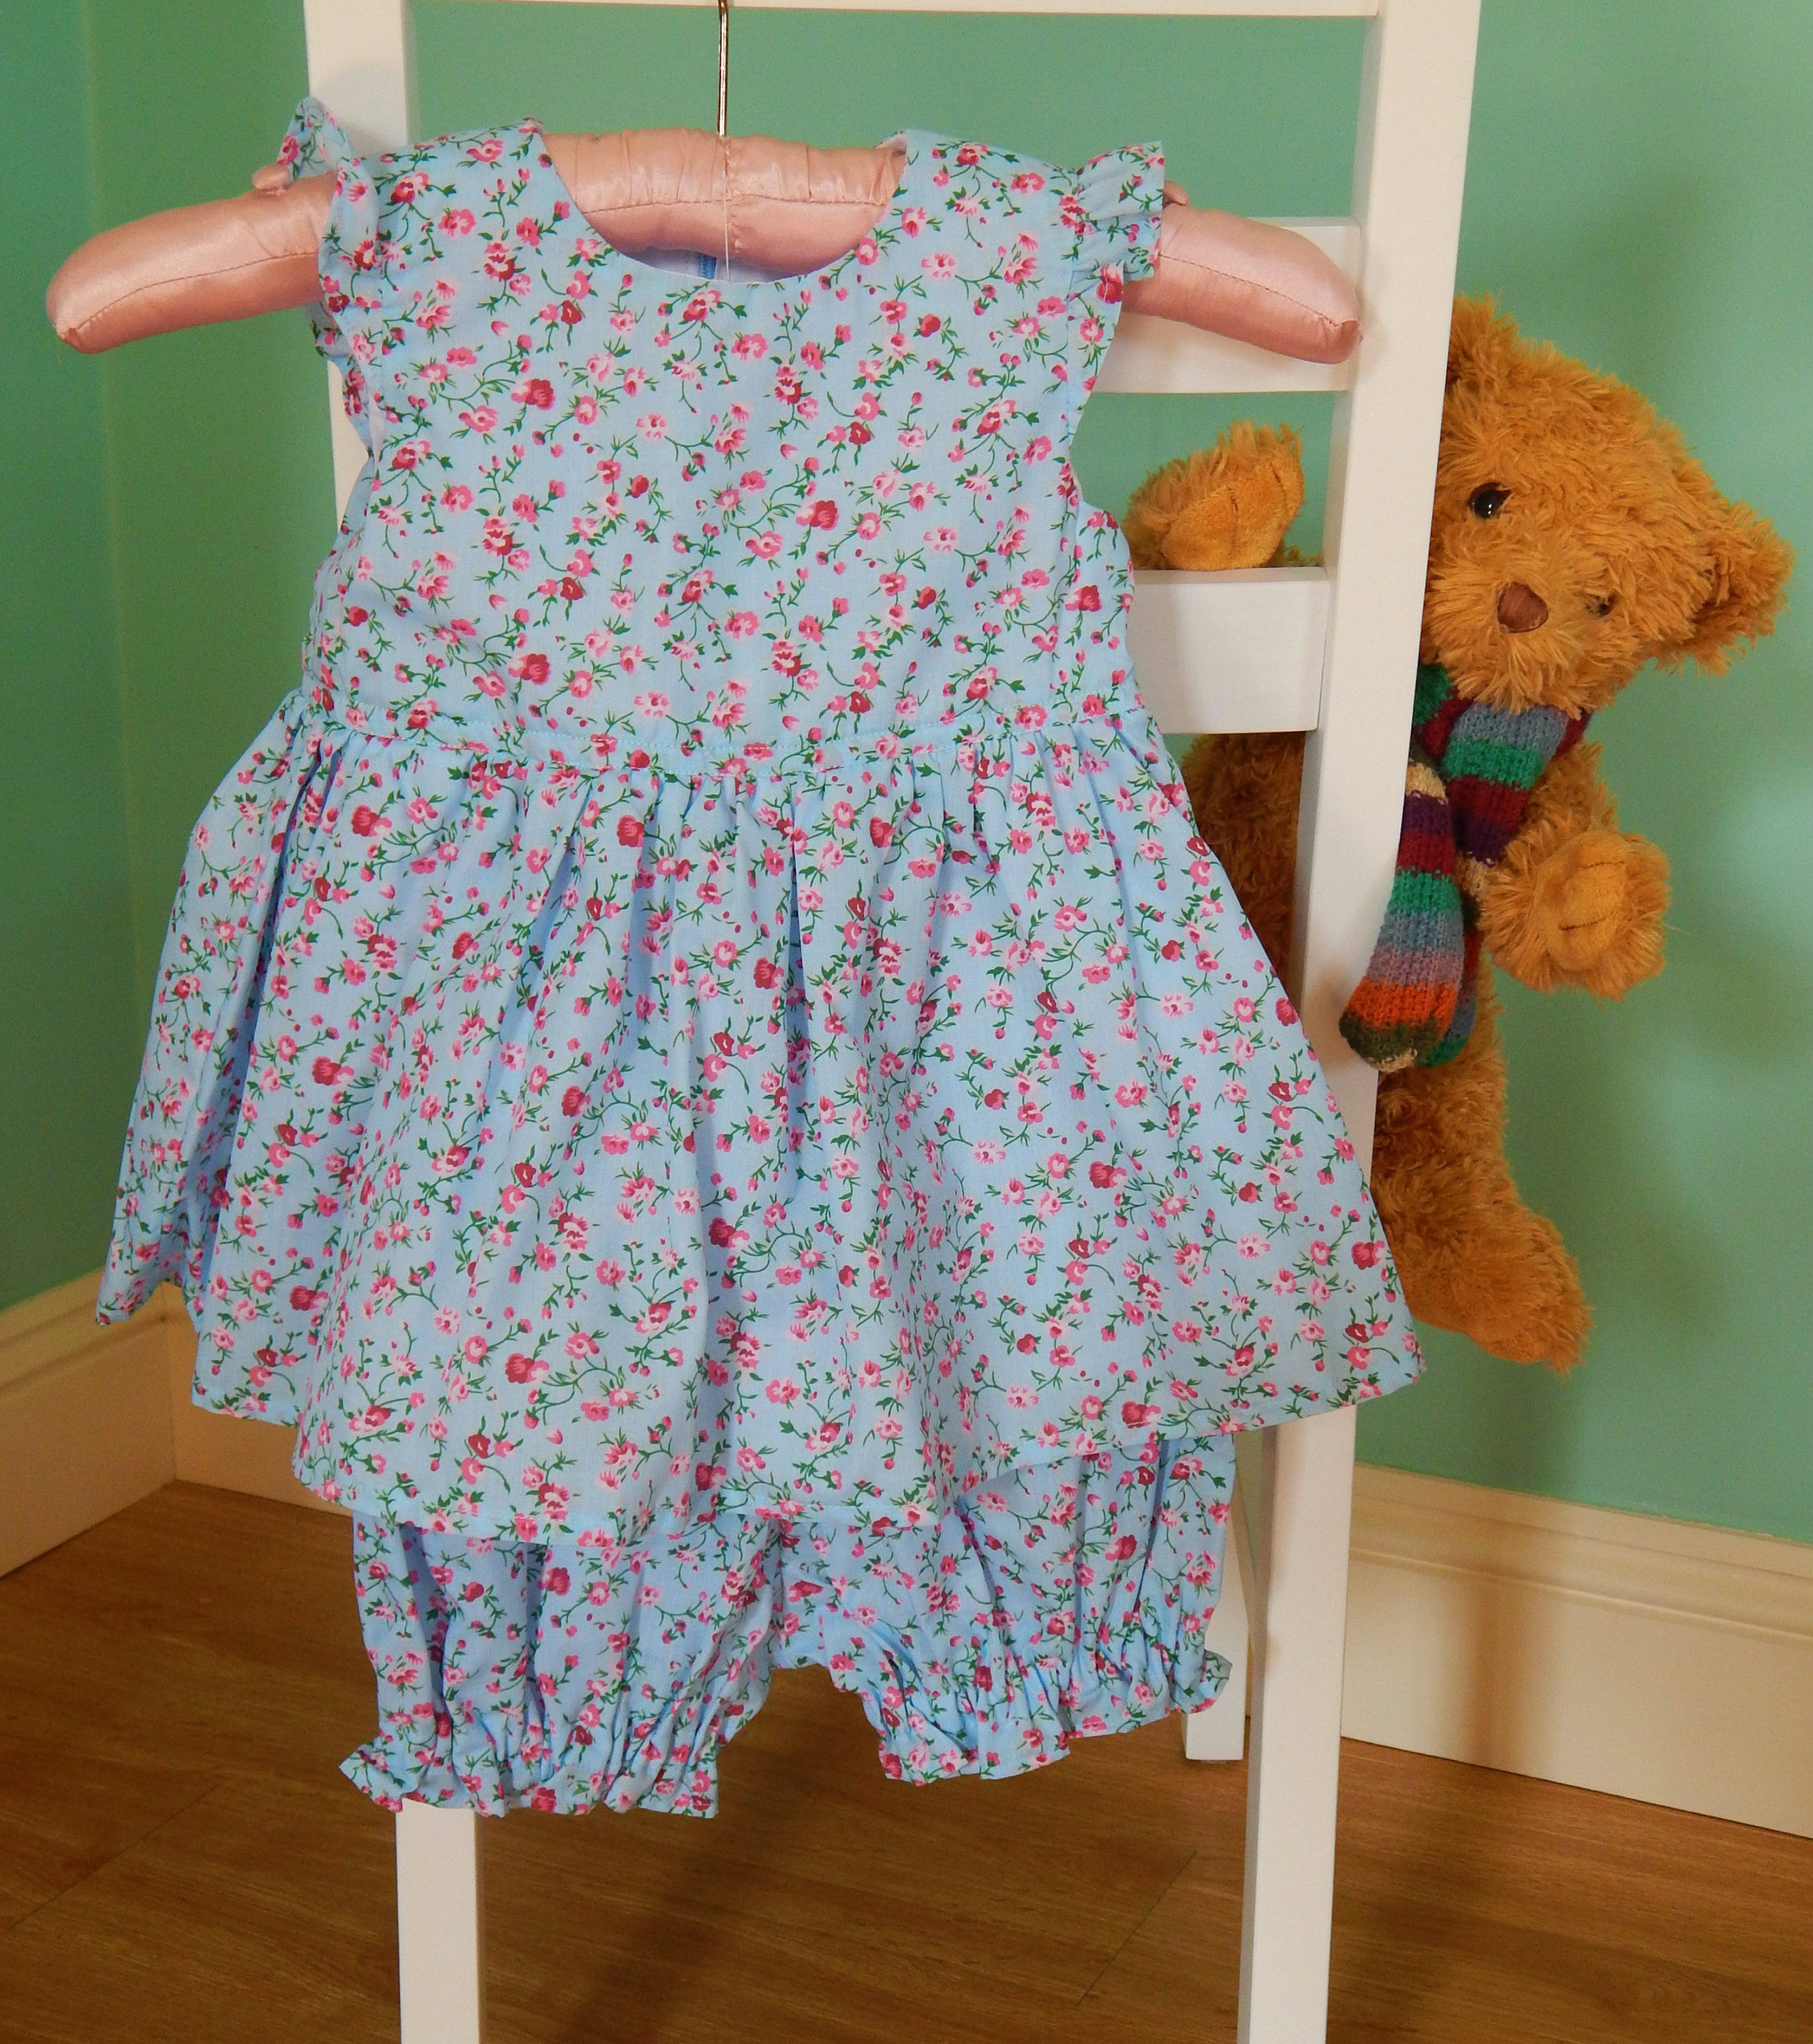 Baby Dressblue With Pink Flowersmatching Panties